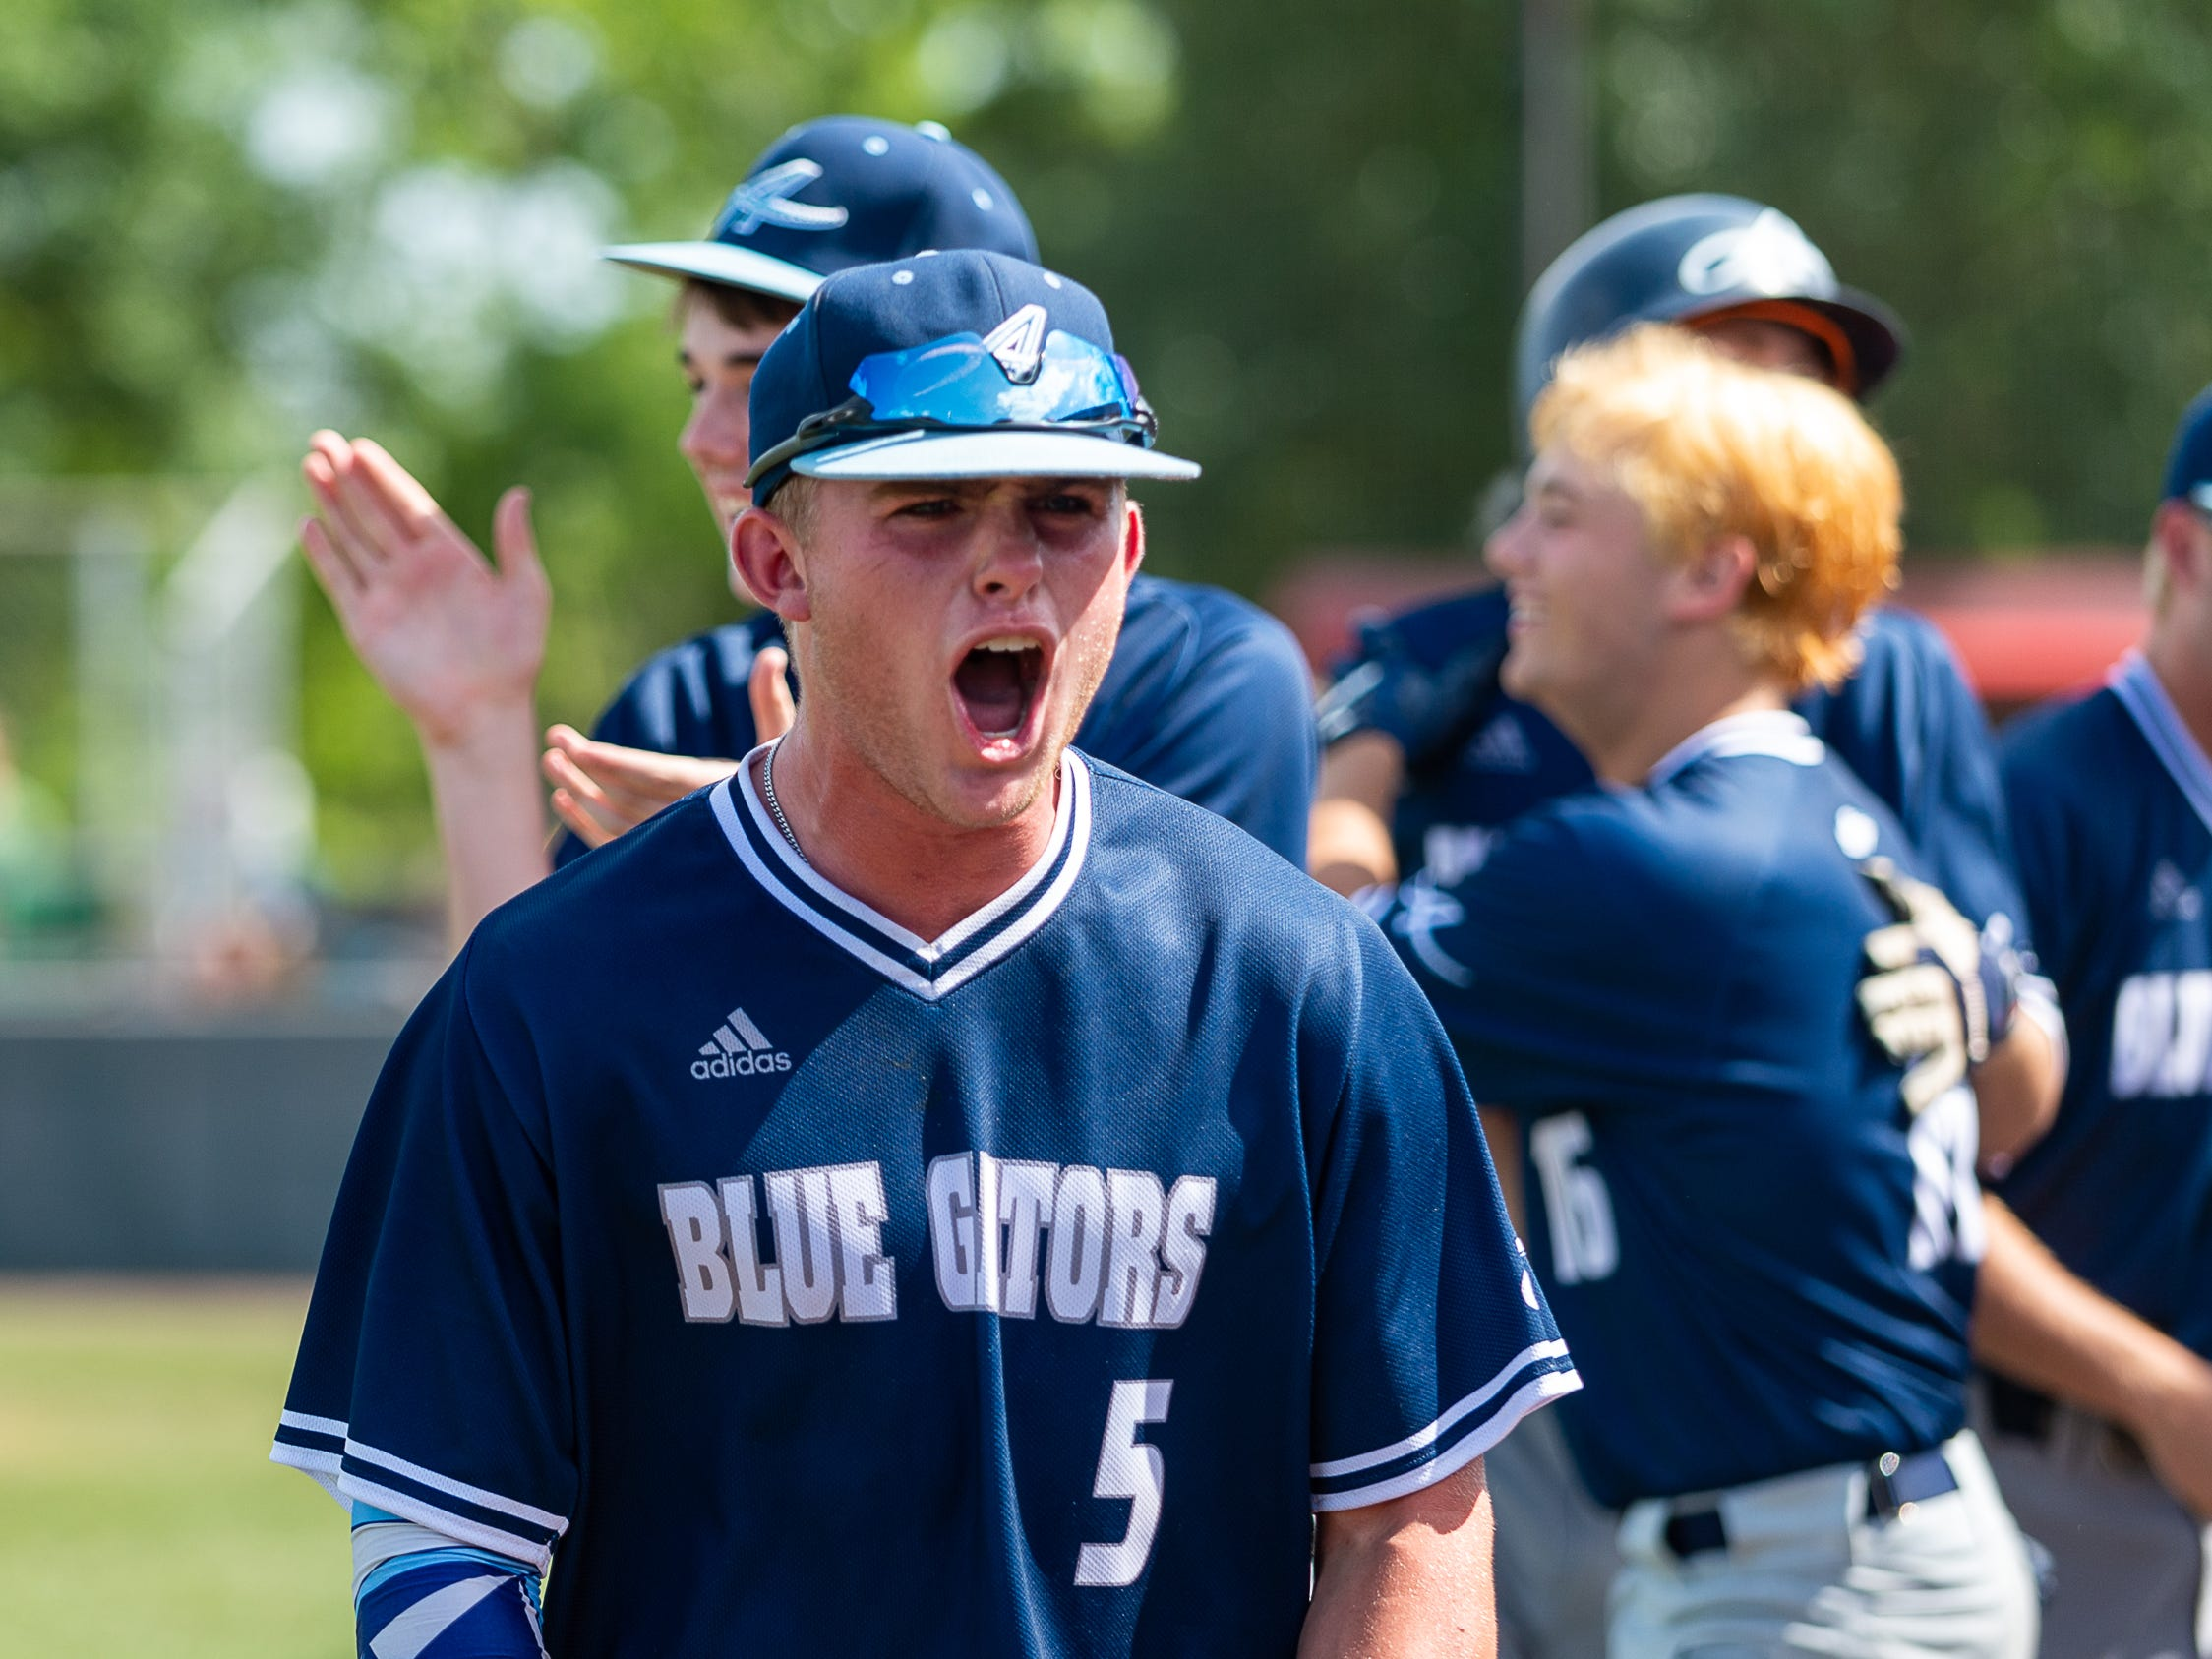 Blaine Blanchard celebrates as the Ascension Blue Gators take on Holy Savior Menard in game two of the semi final round of the LHSAA playoffs. Sunday, May 5, 2019.